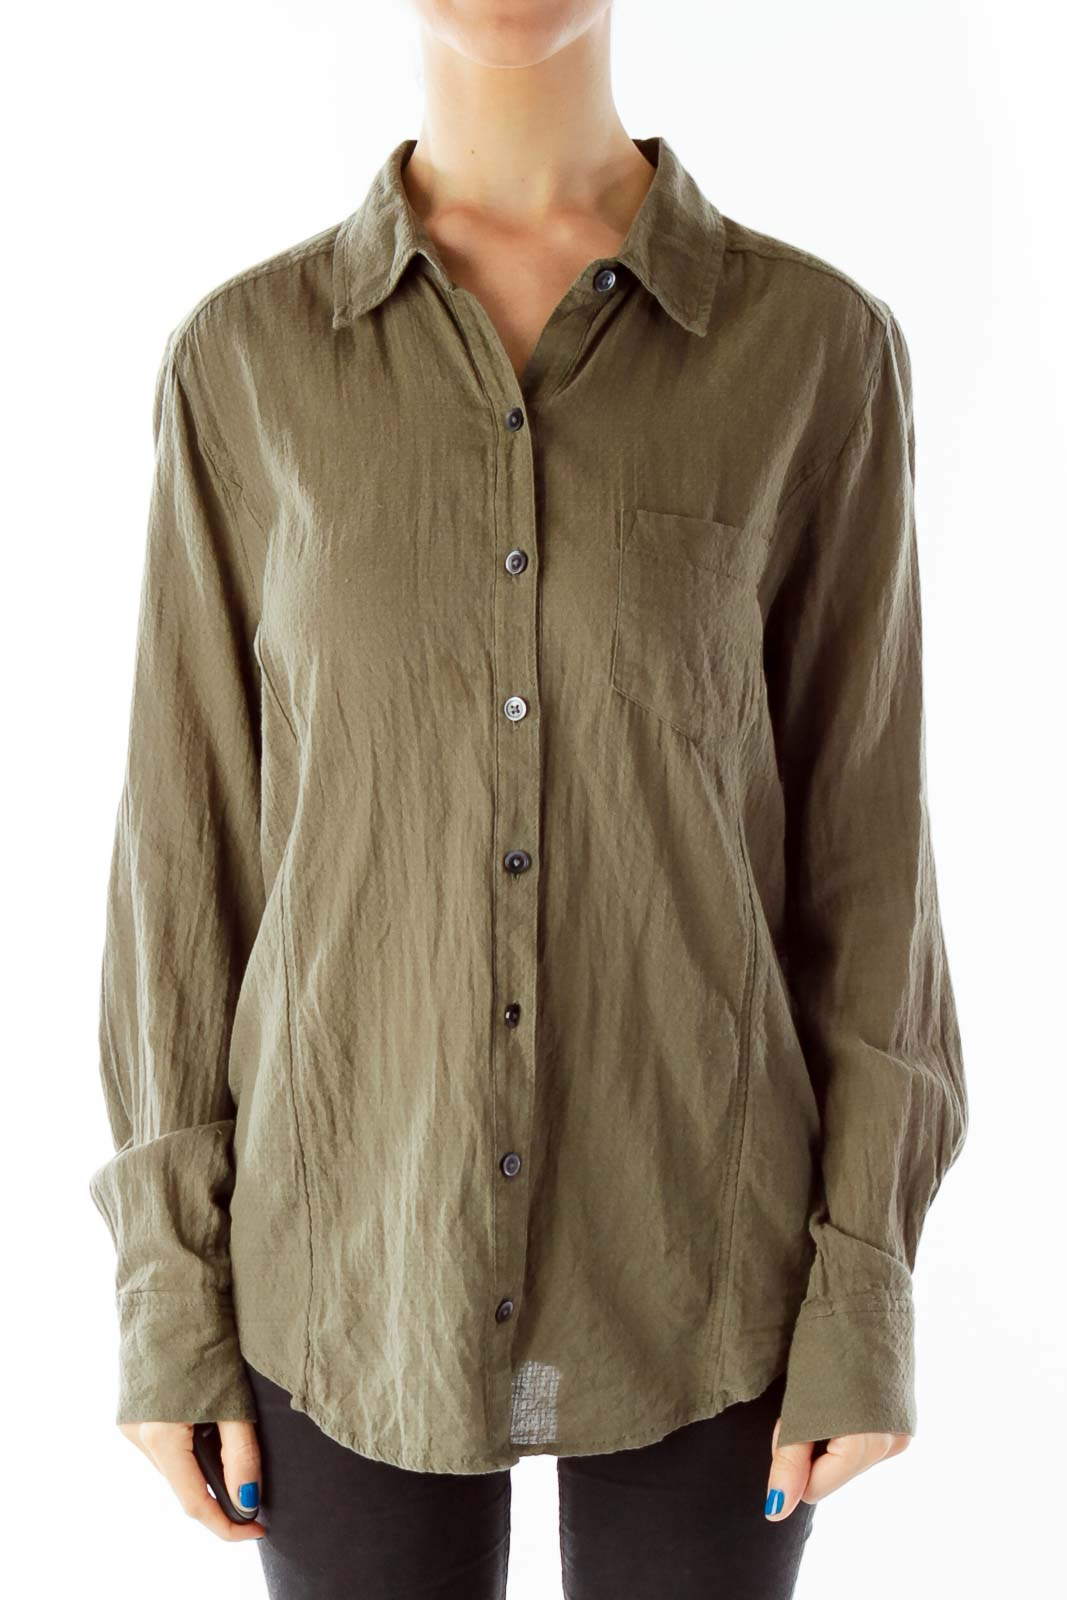 Army Green Pocketed Button Down Shirt